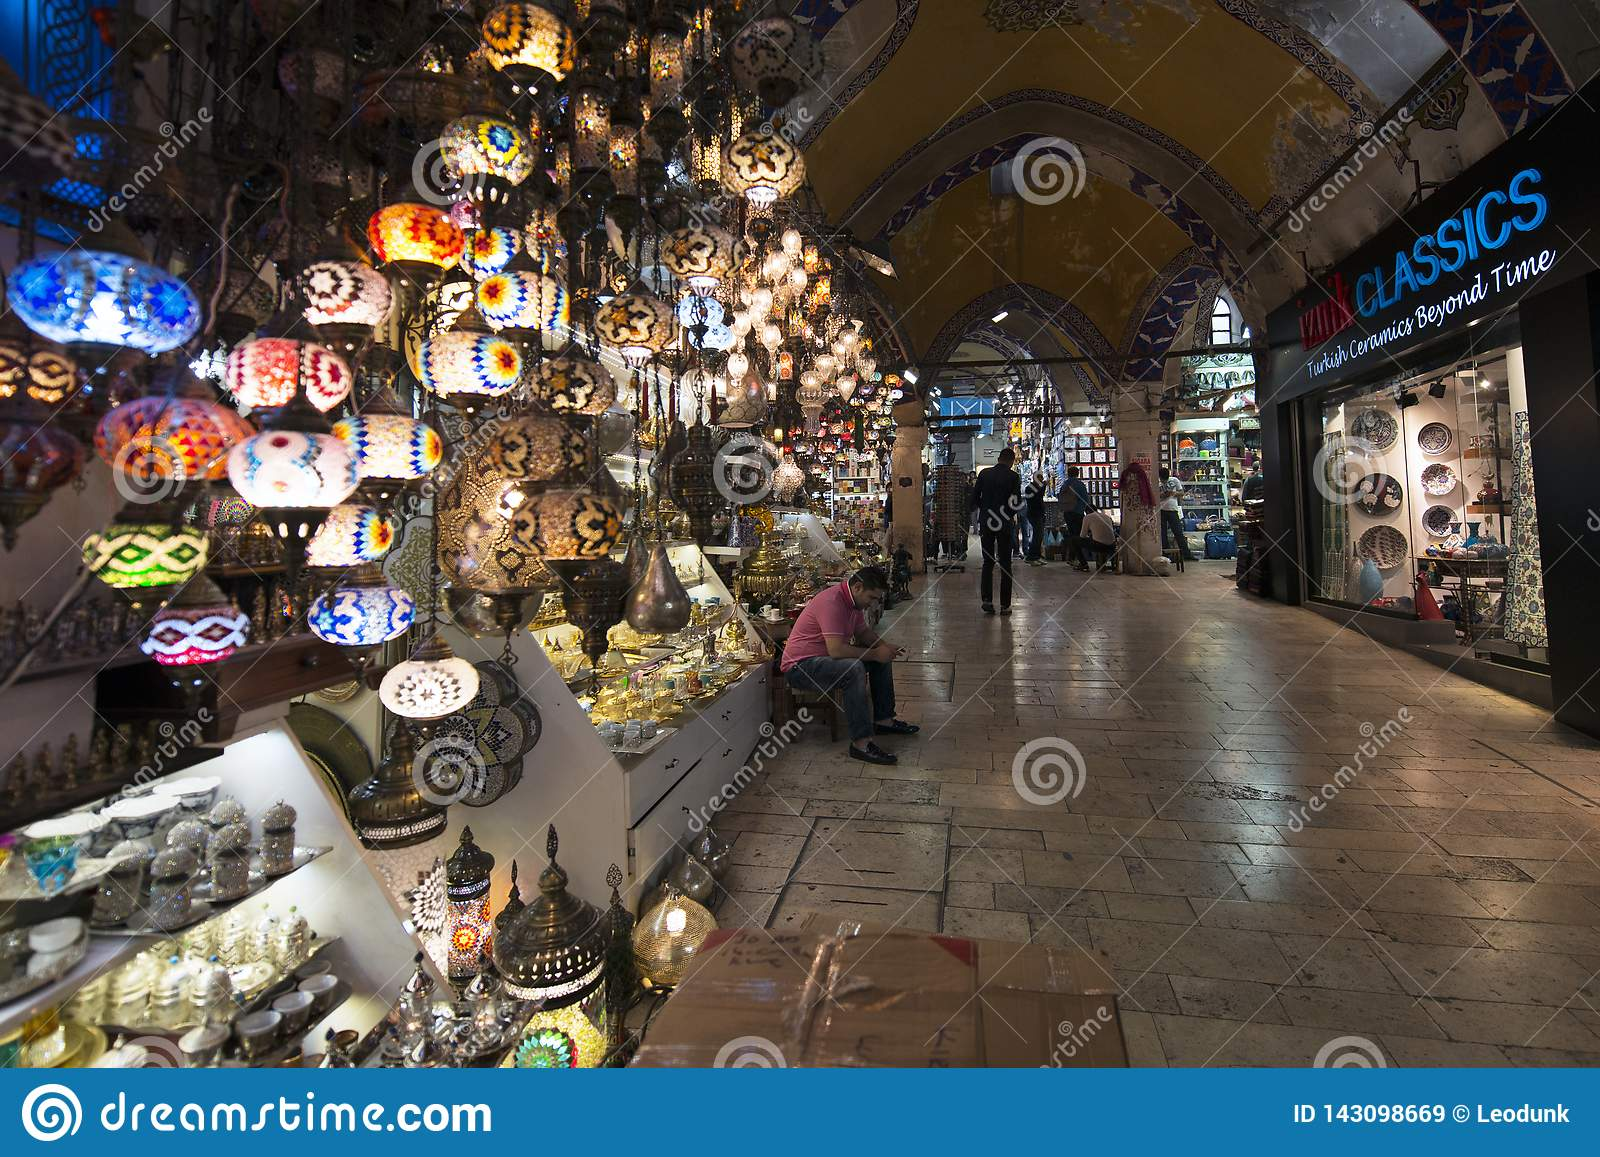 Grand Bazaar, one of the oldest shopping mall in history. This market is in Istanbul, Turkey